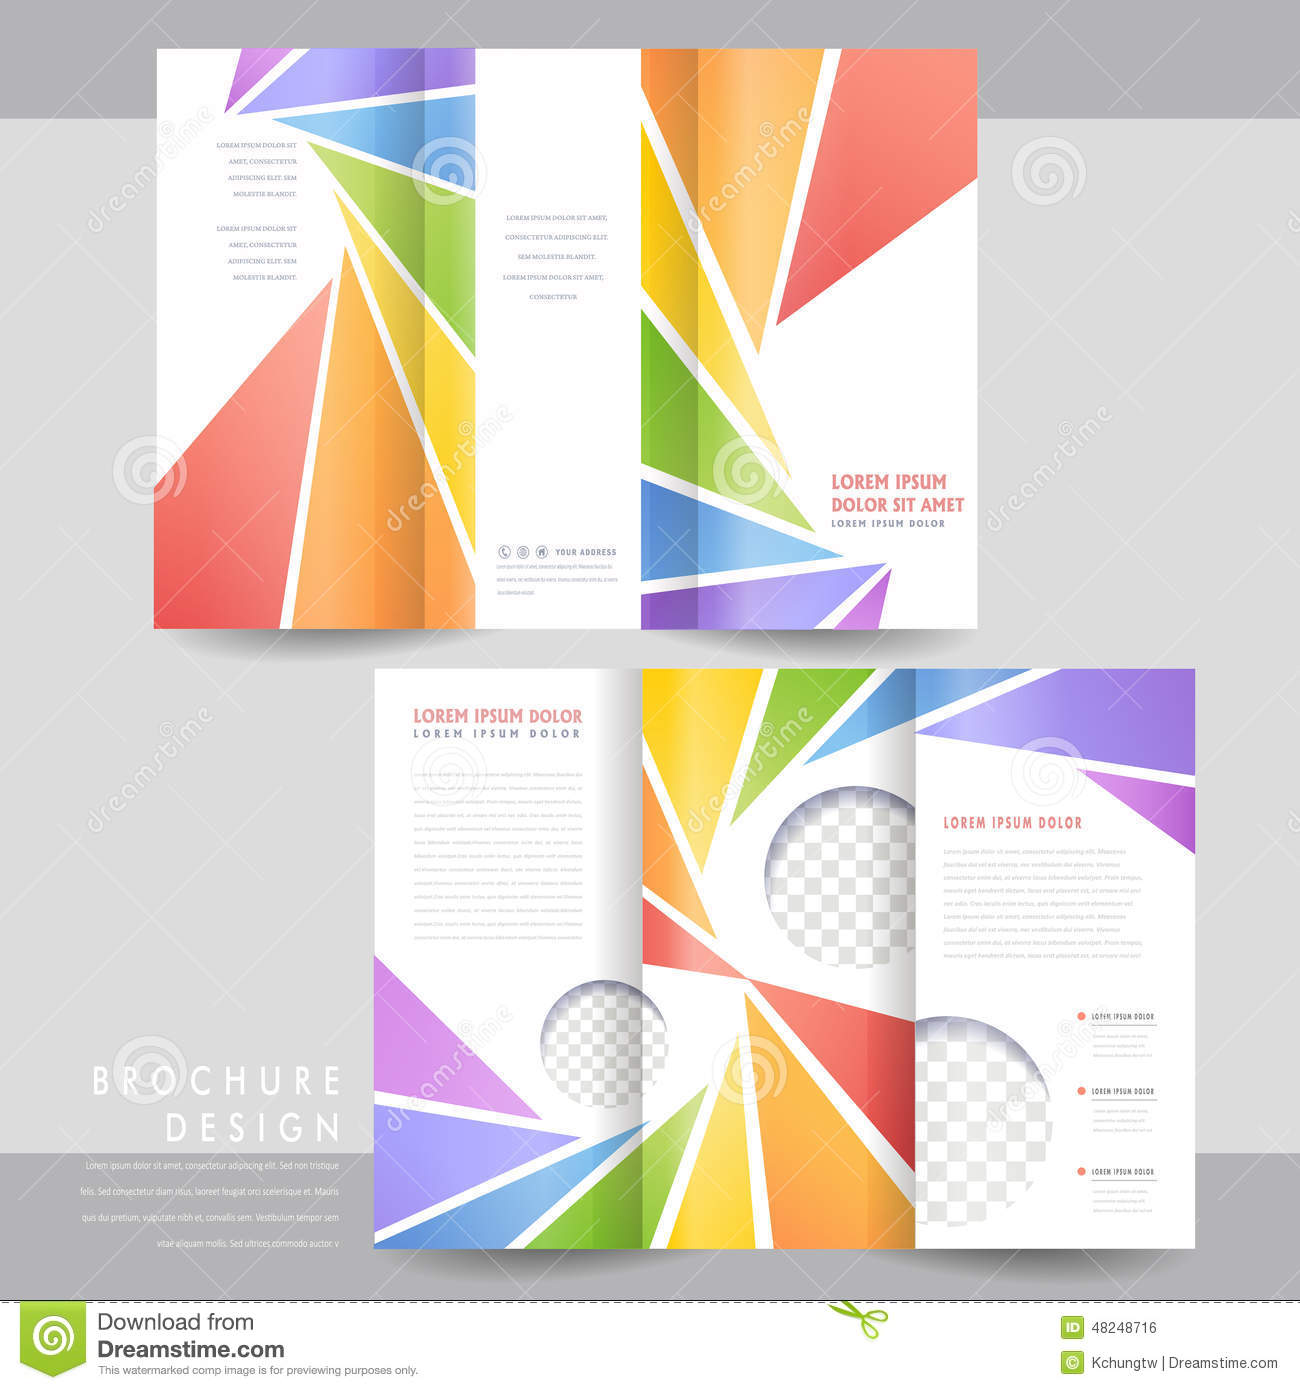 templates brochure design - colorful tri fold brochure template design stock vector